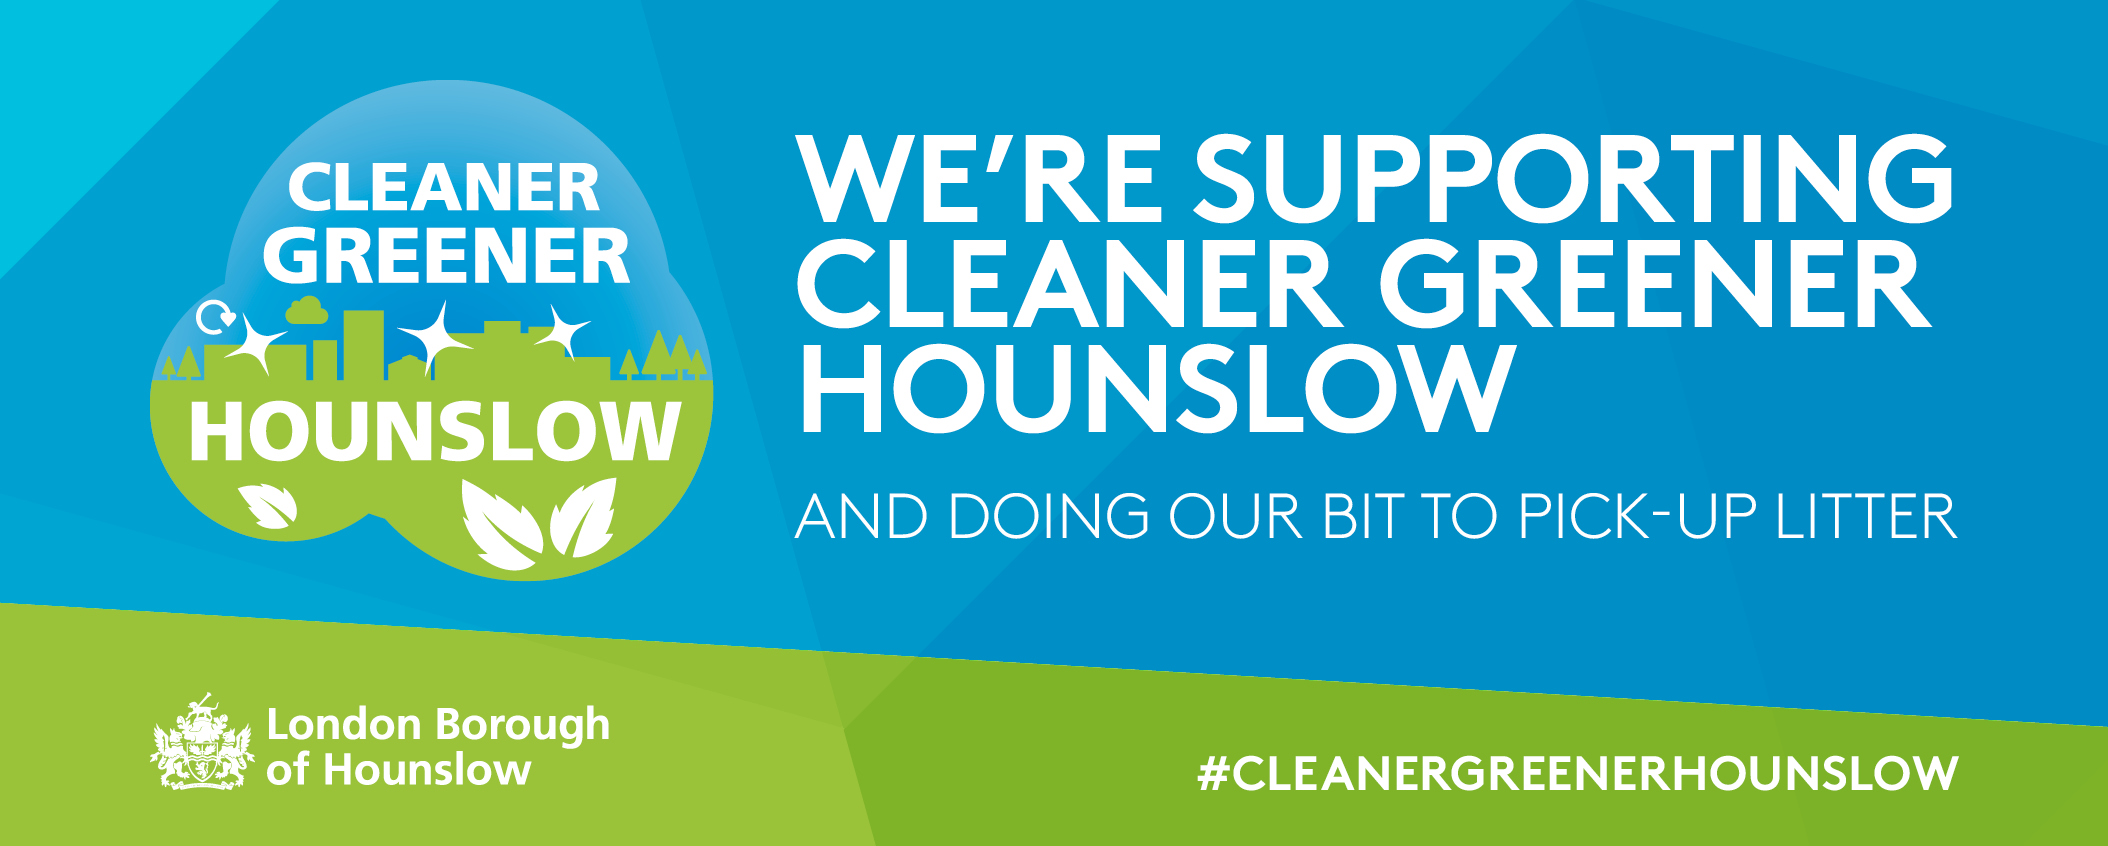 Cleaner Greener Campaign  for Twitter